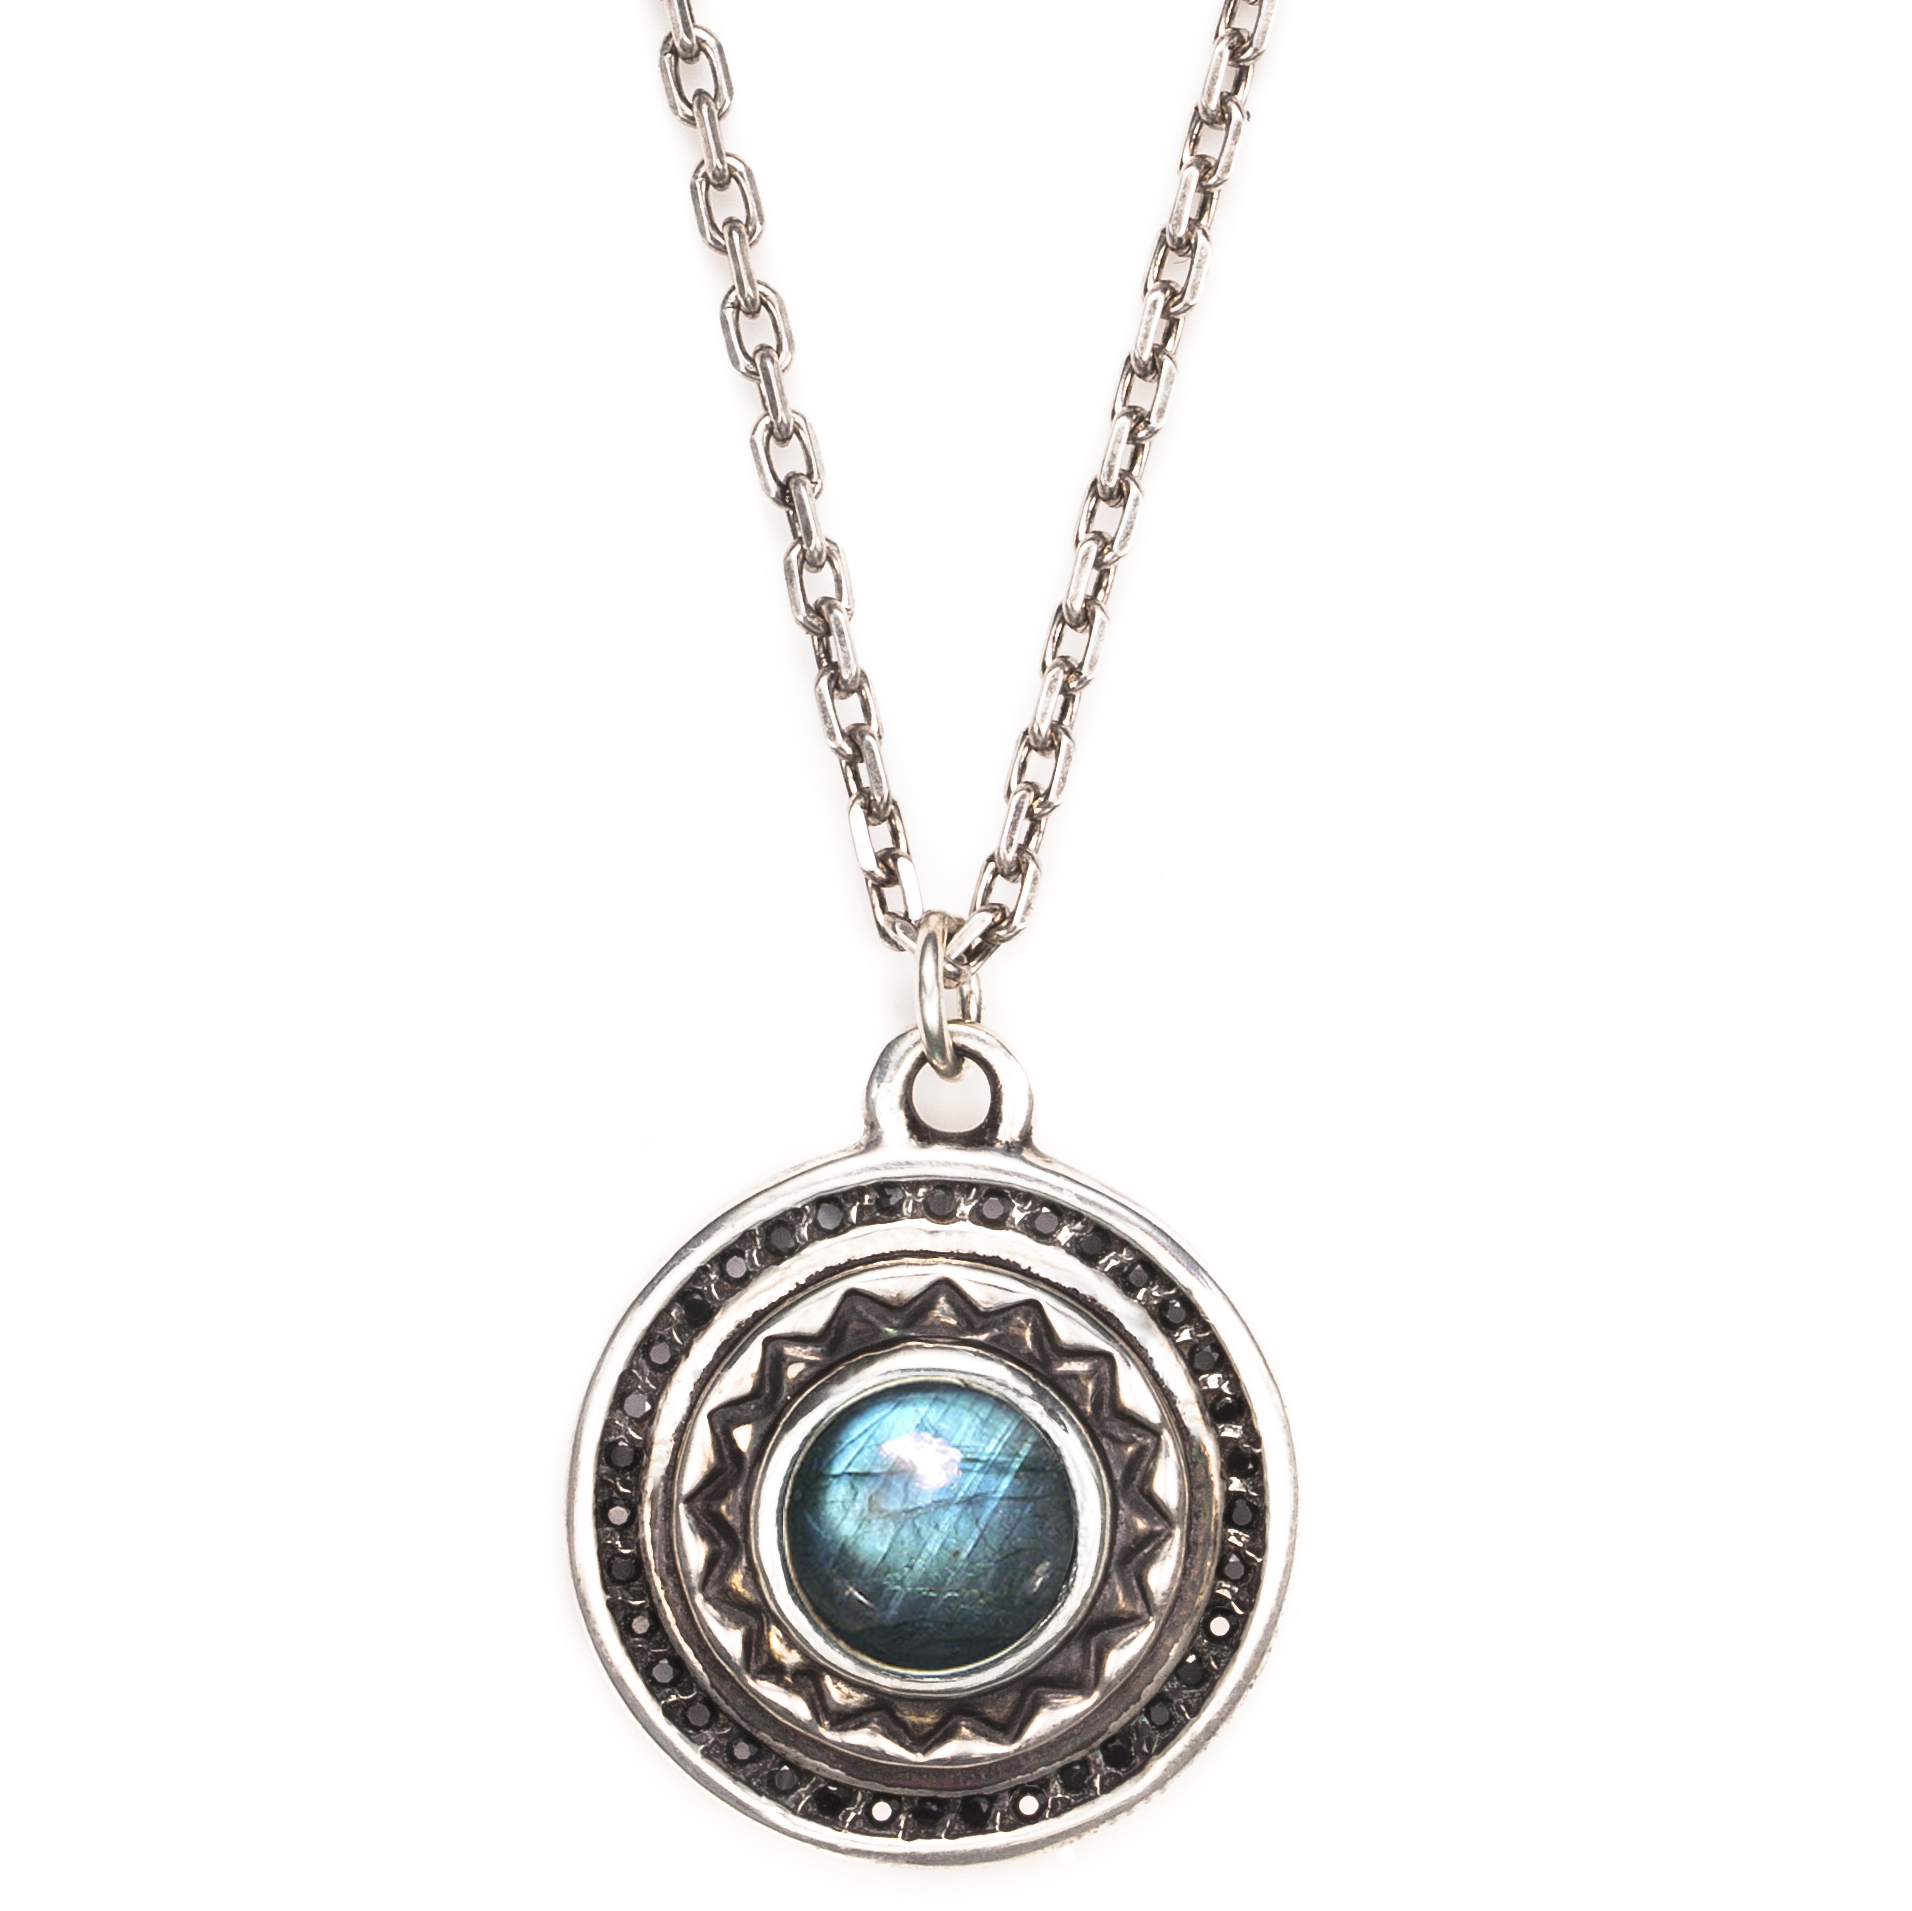 """<a href=""""http://www.pamelalovenyc.com/collections/pamela-love/products/web-exclusive-solar-pendant-in-sterling-silver-with-labradorite"""">Solar Pendant with labradorite and black spinel</a>, $375 (was $875)"""